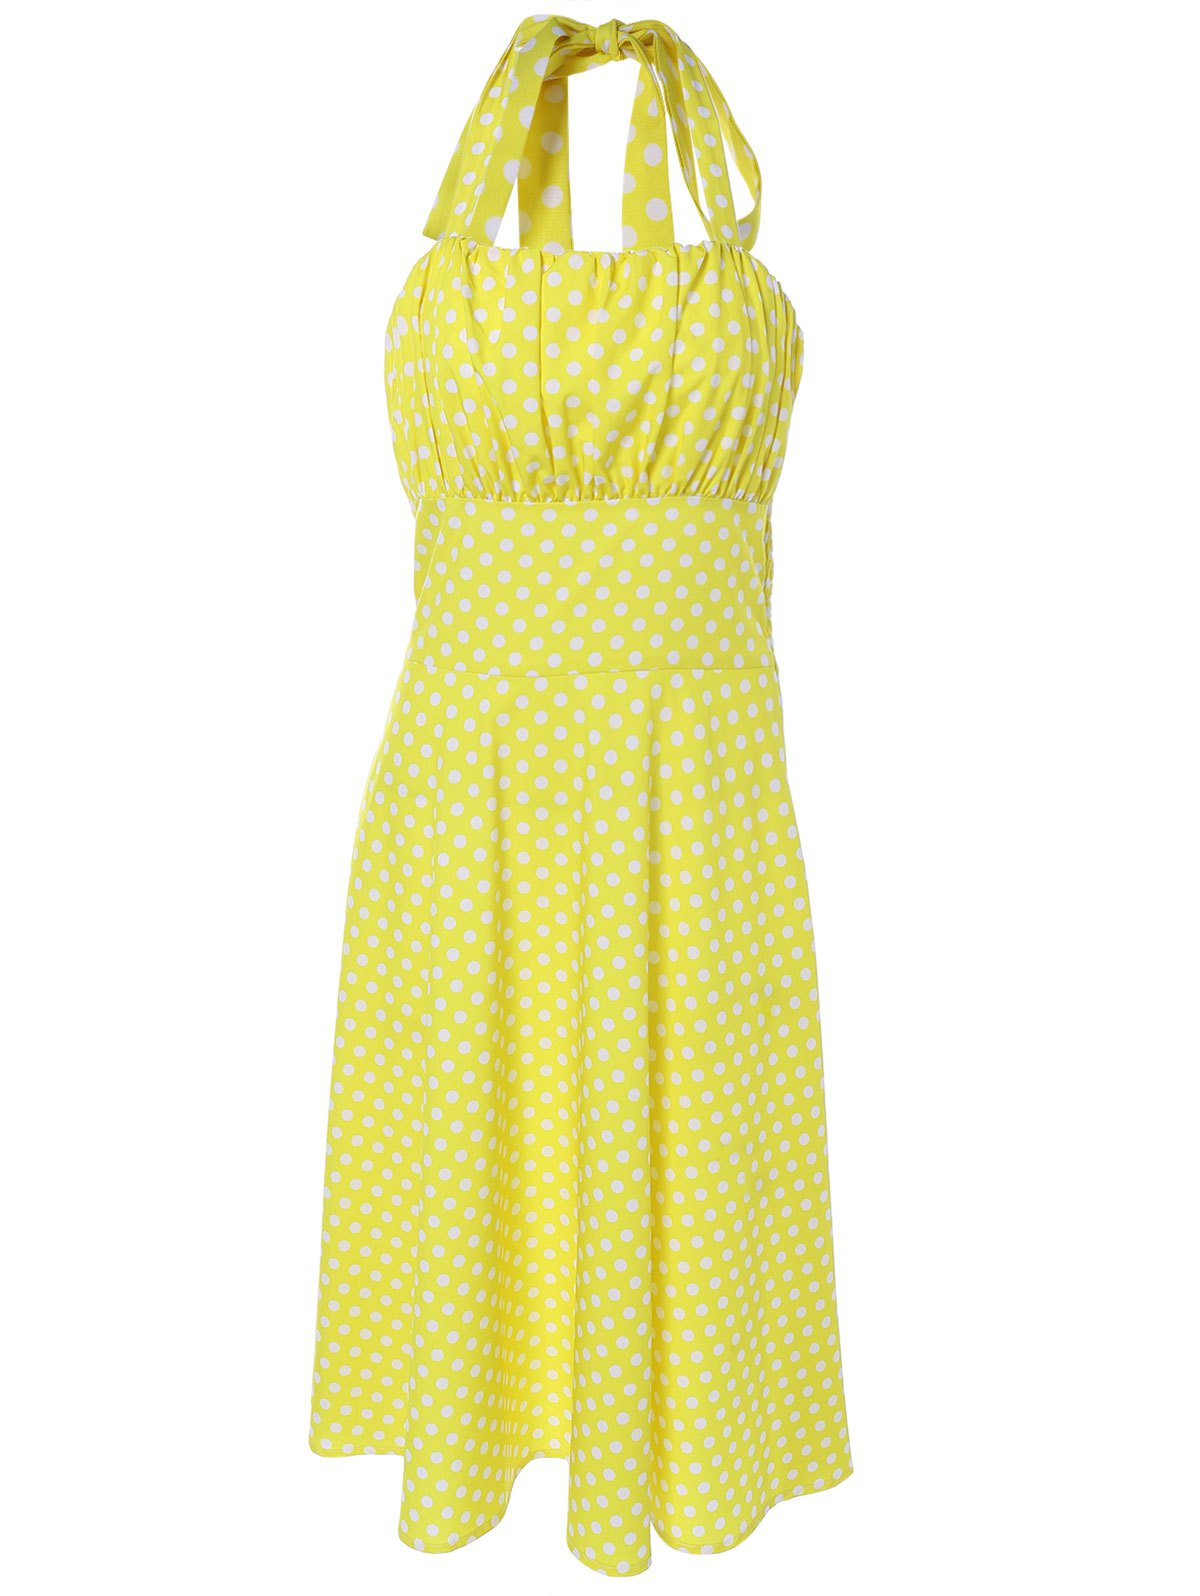 Vintage Halter Polka Dot Dress